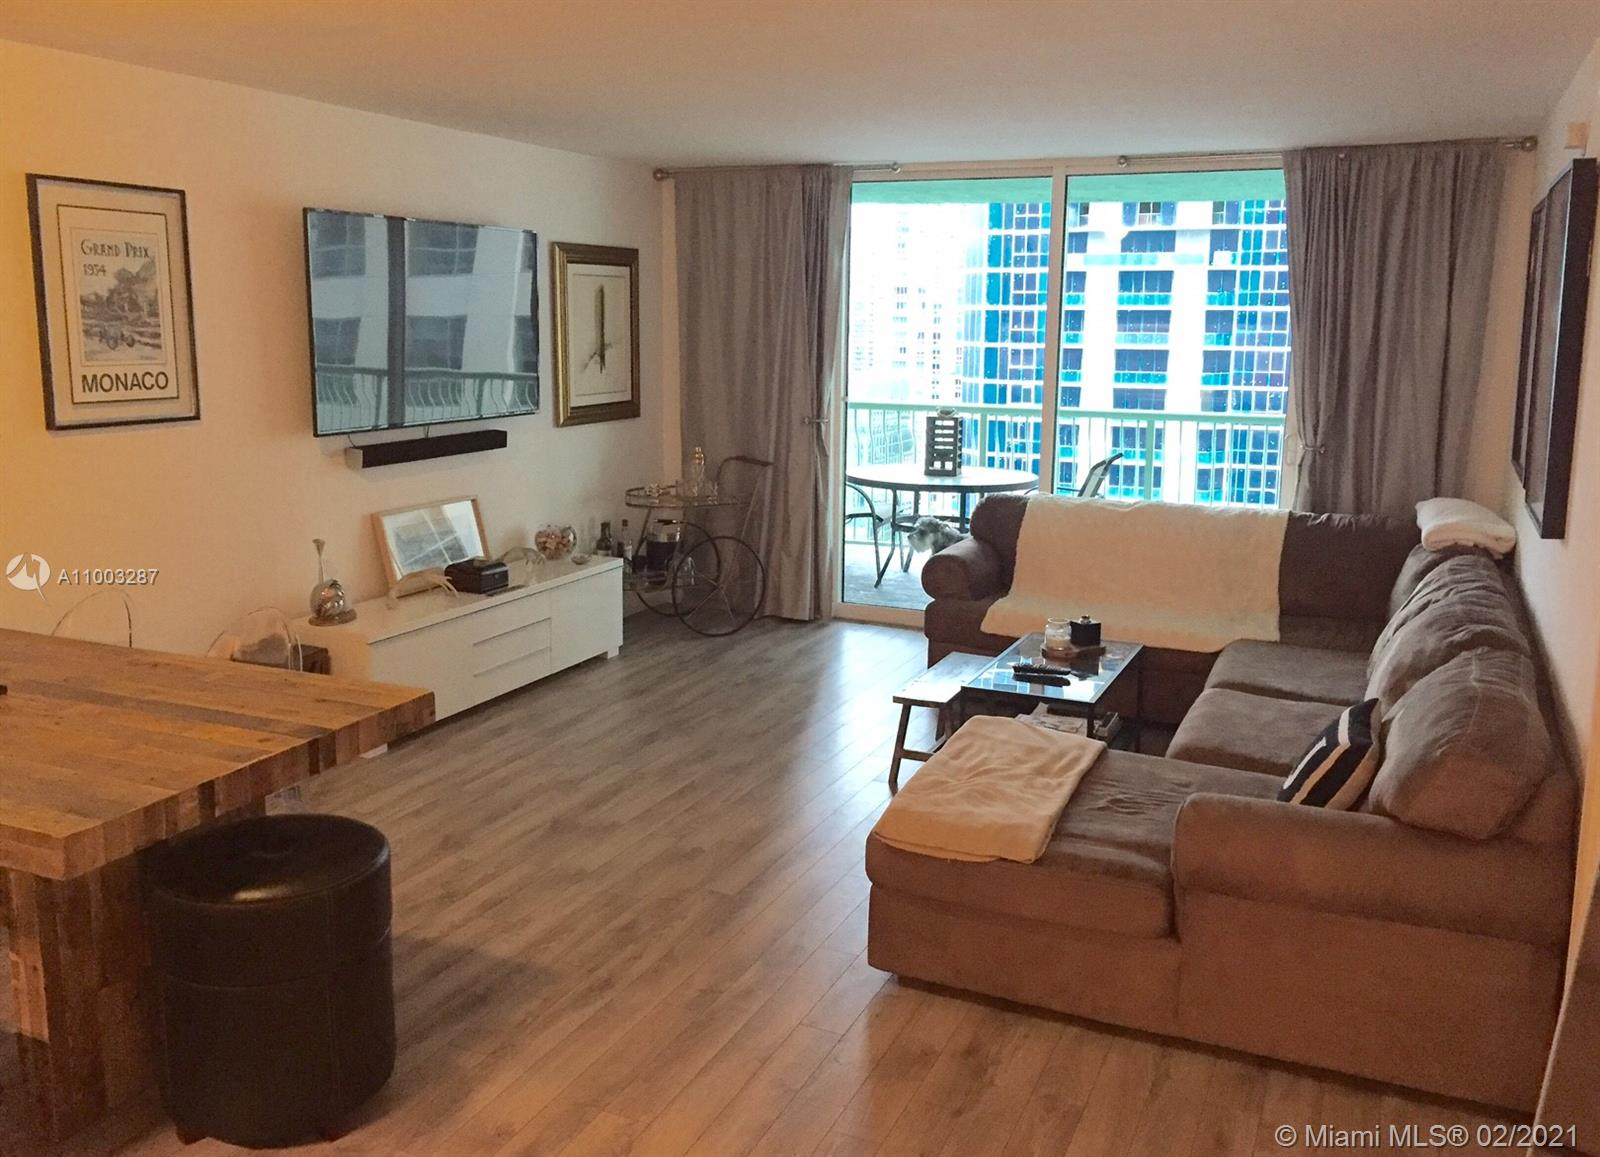 Club at Brickell #3118 - 1200 Brickell Bay Dr #3118, Miami, FL 33131